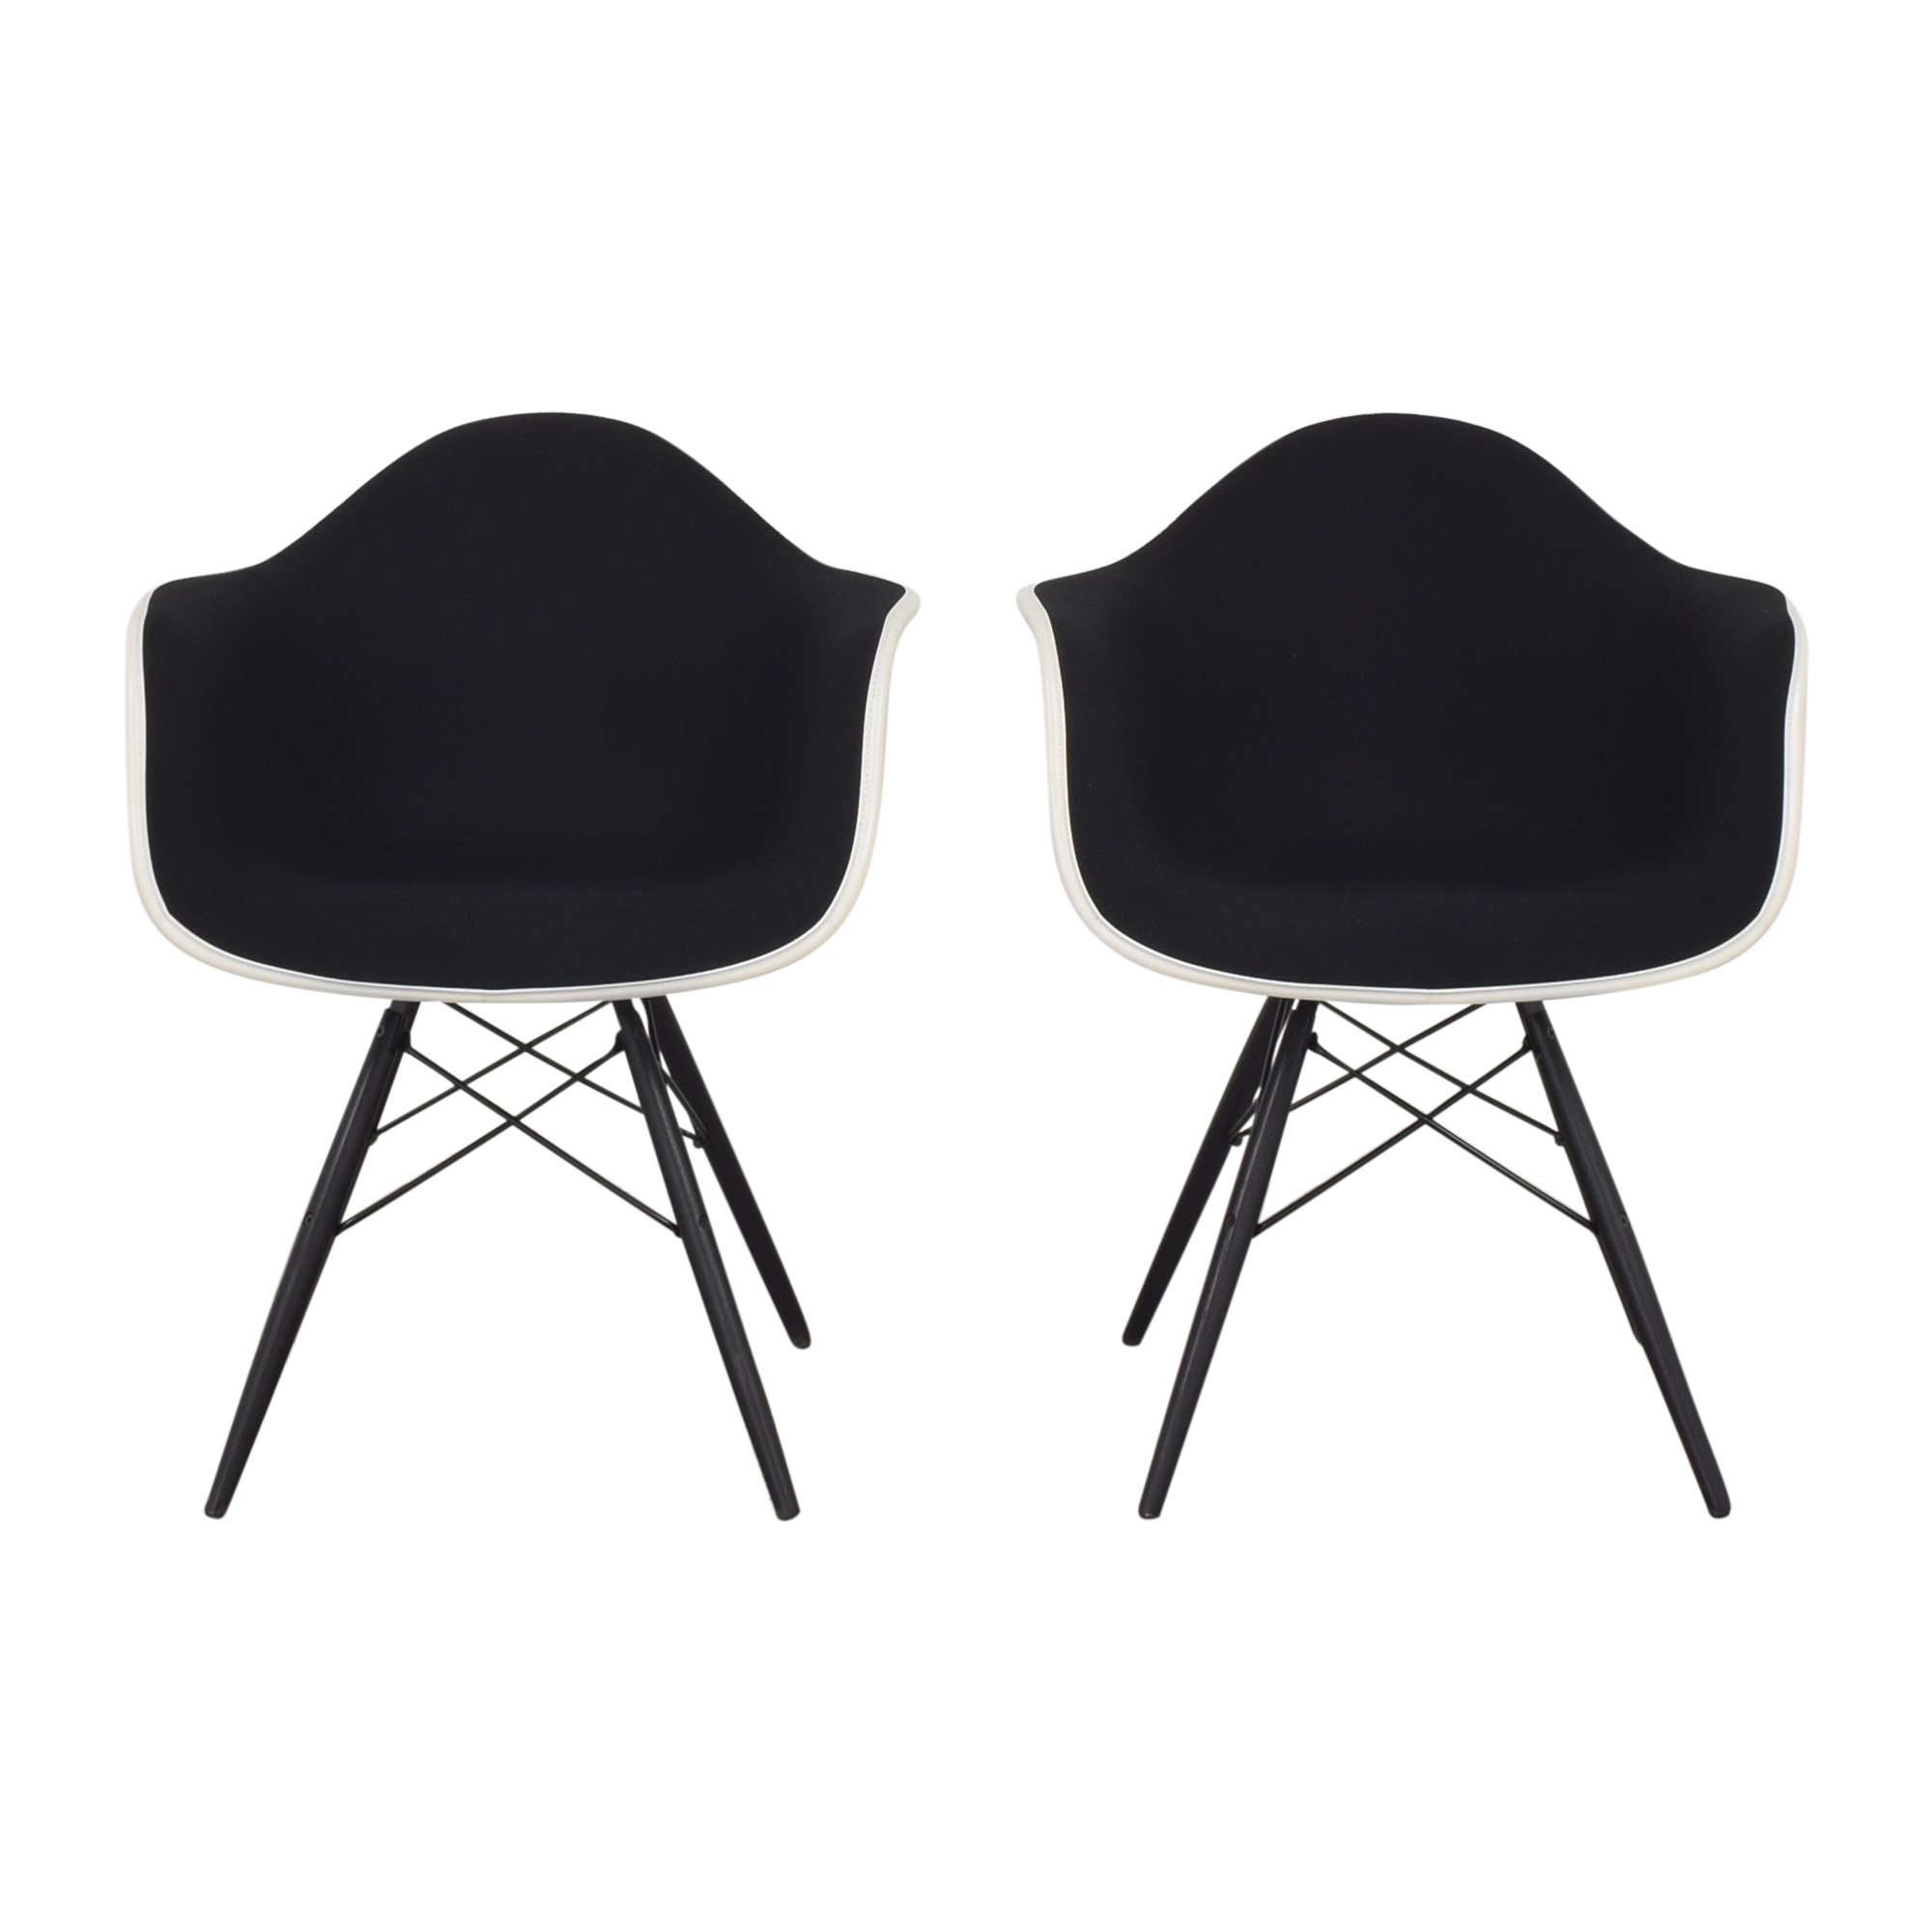 Herman Miller Eames Molded Arm Chairs / Accent Chairs